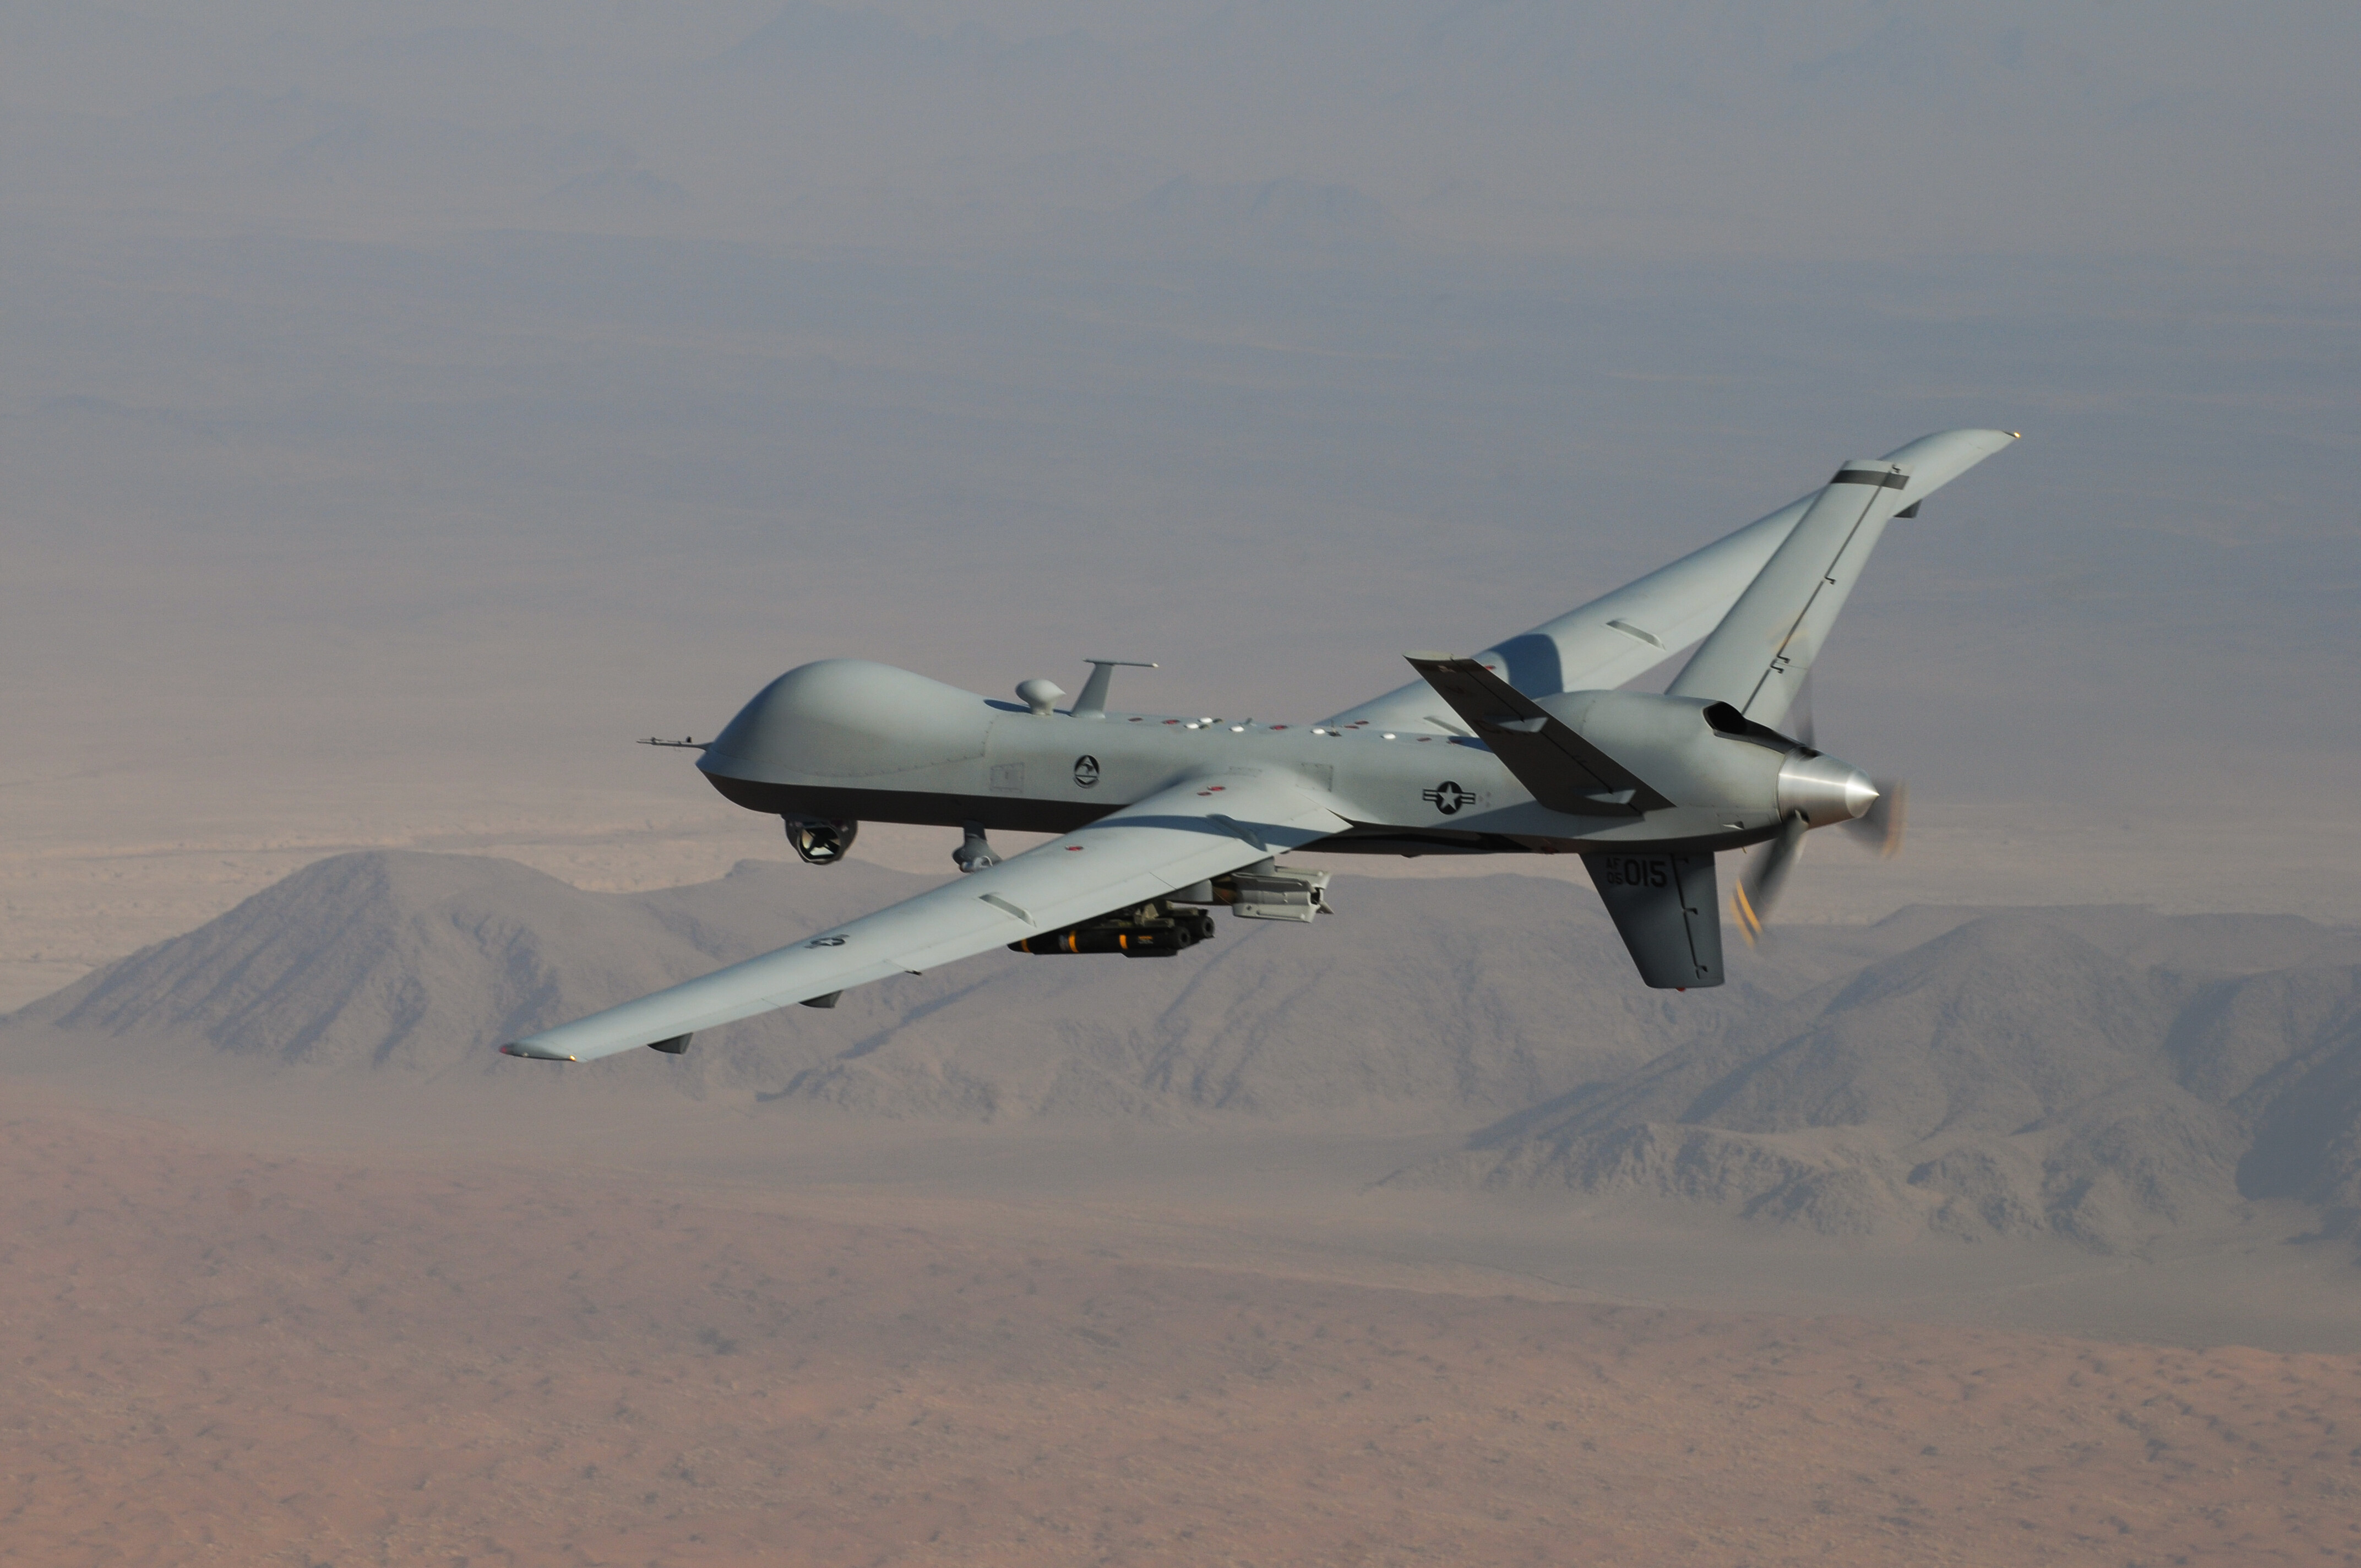 US nearing a formal agreement to use Pakistan's airspace to carry out military operations in Afghanistan